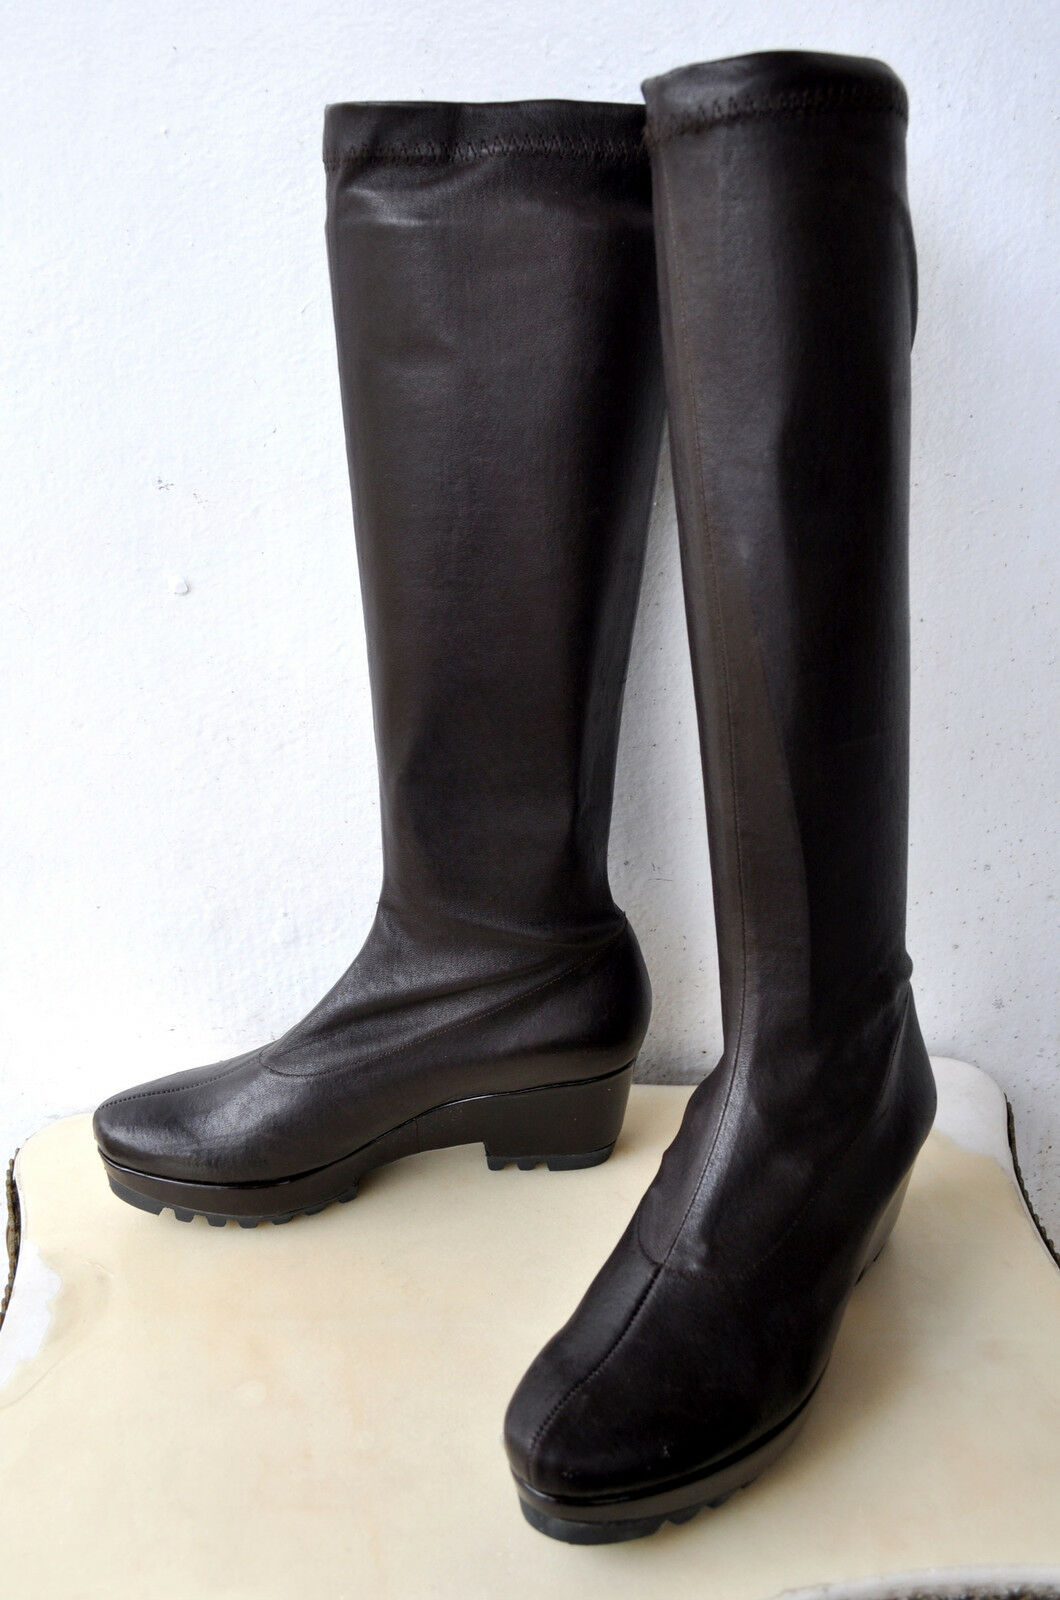 Robert Clergerie Knee High Stretch Leather Wedge Boots Sz 6.5 B France SOLD OUT!